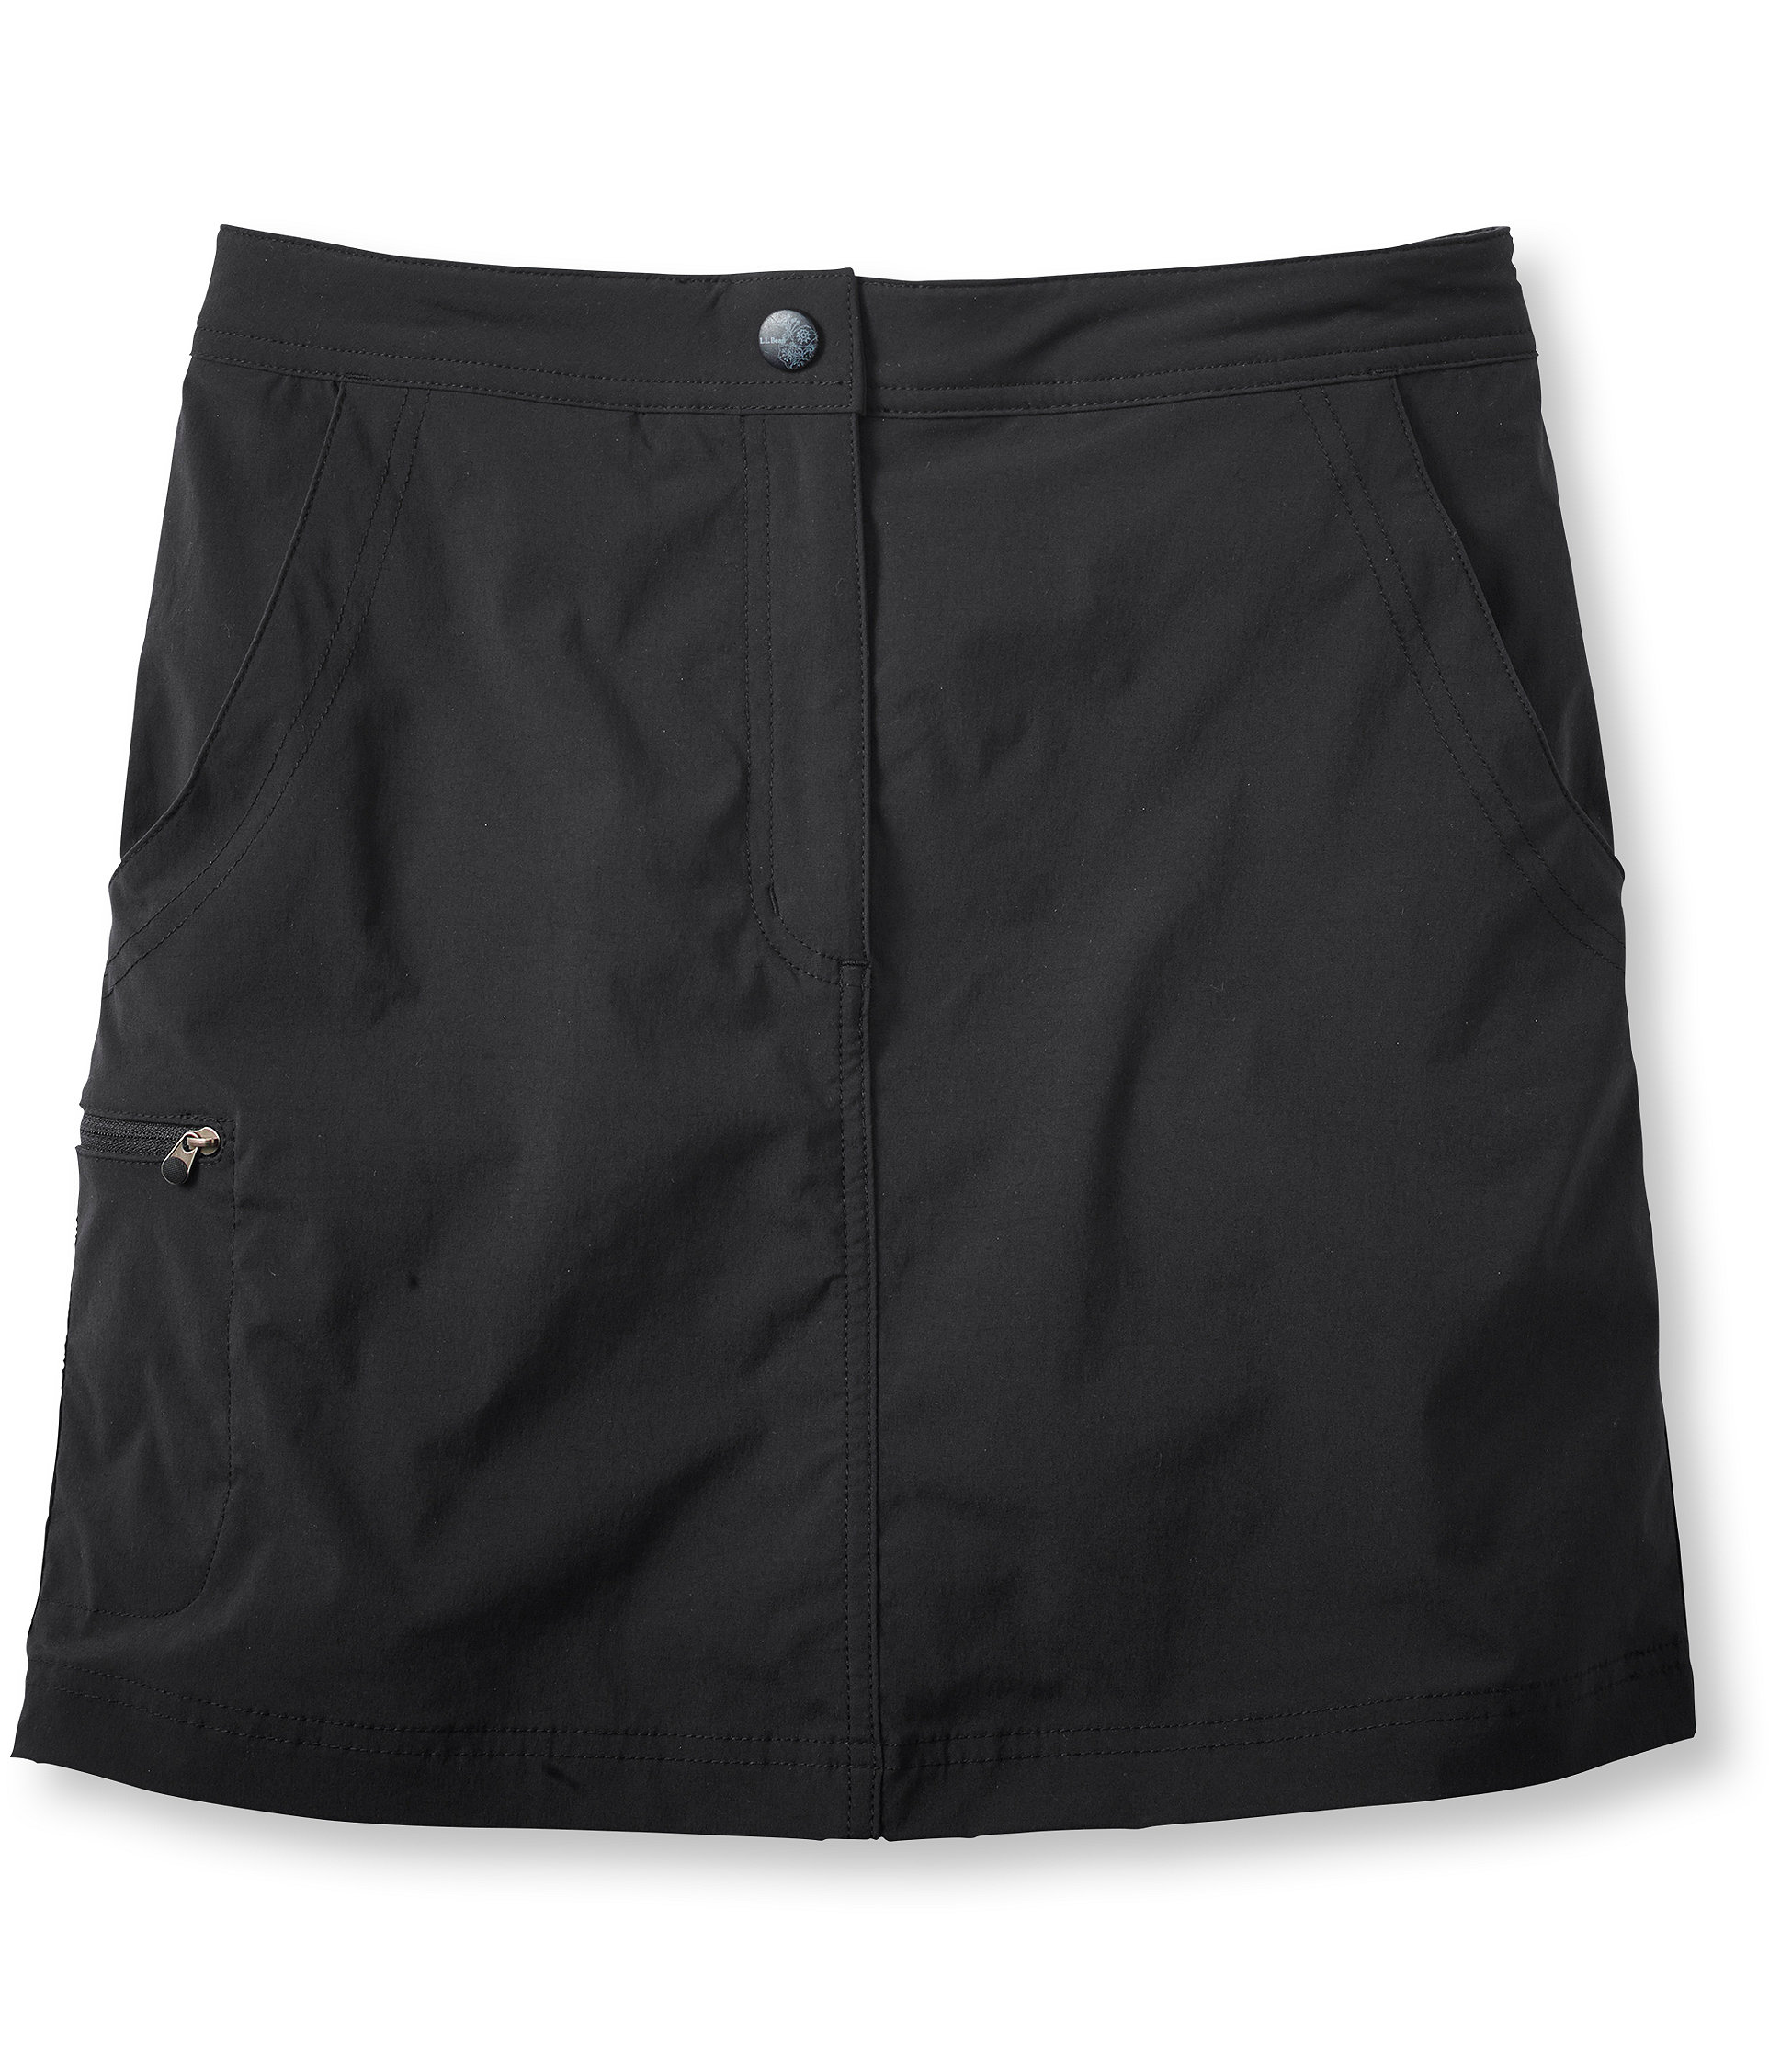 L.L.Bean Comfort Trail Hiking Skort